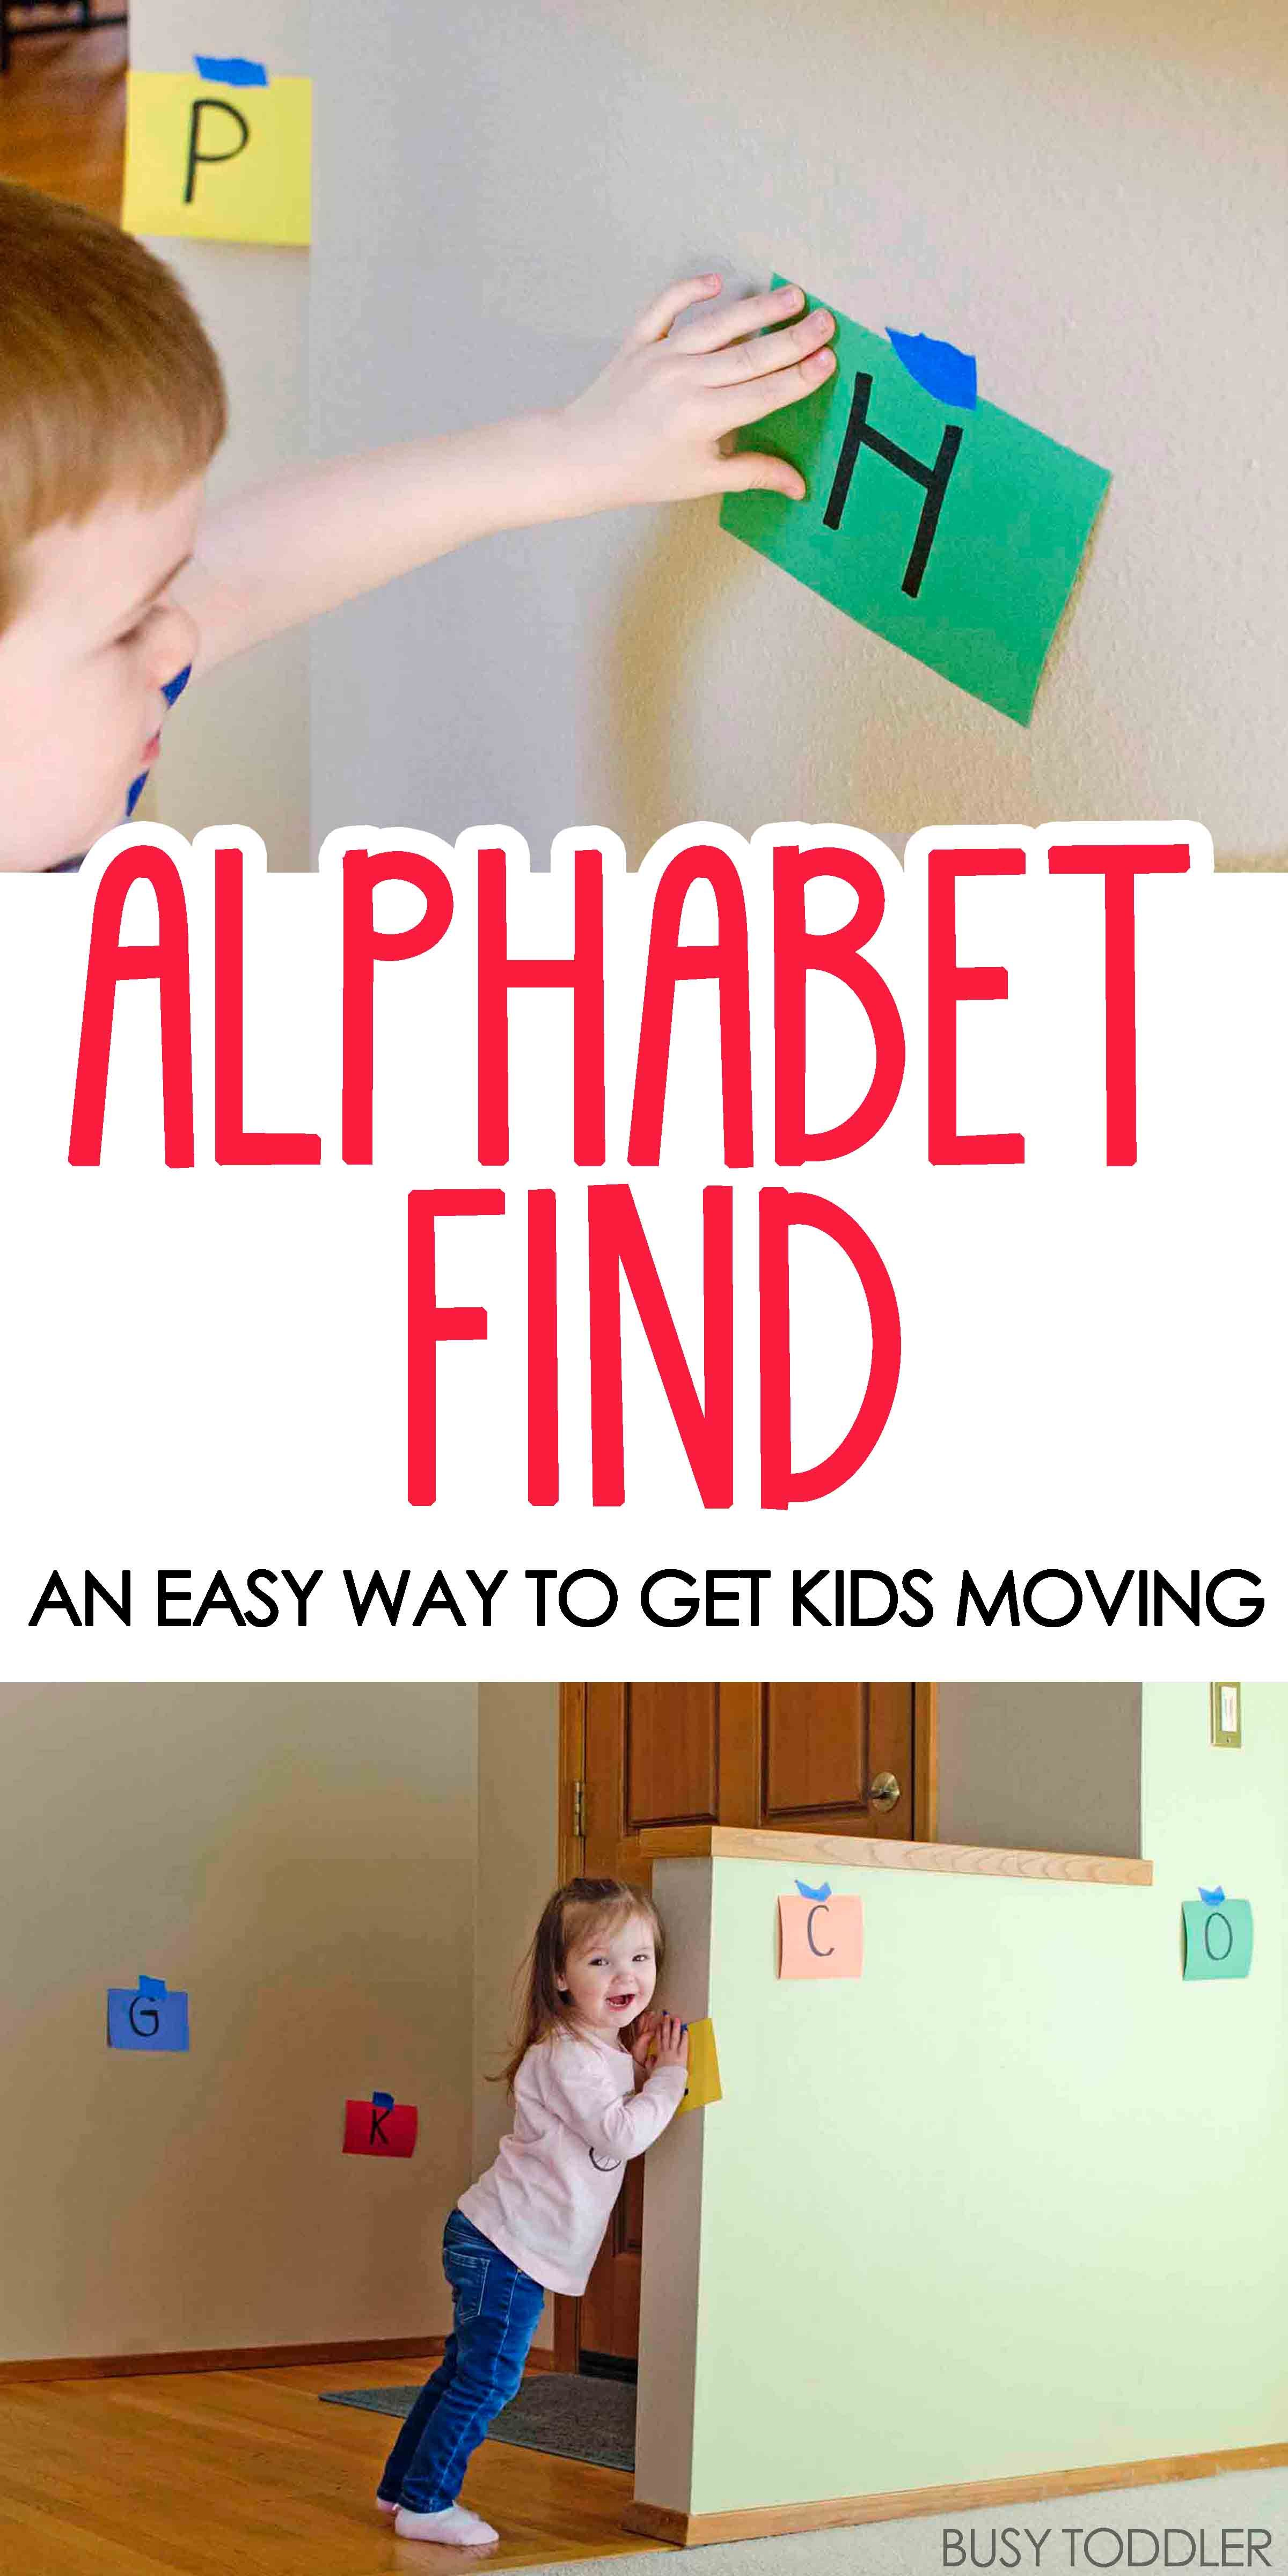 Alphabet Find Learning Activity